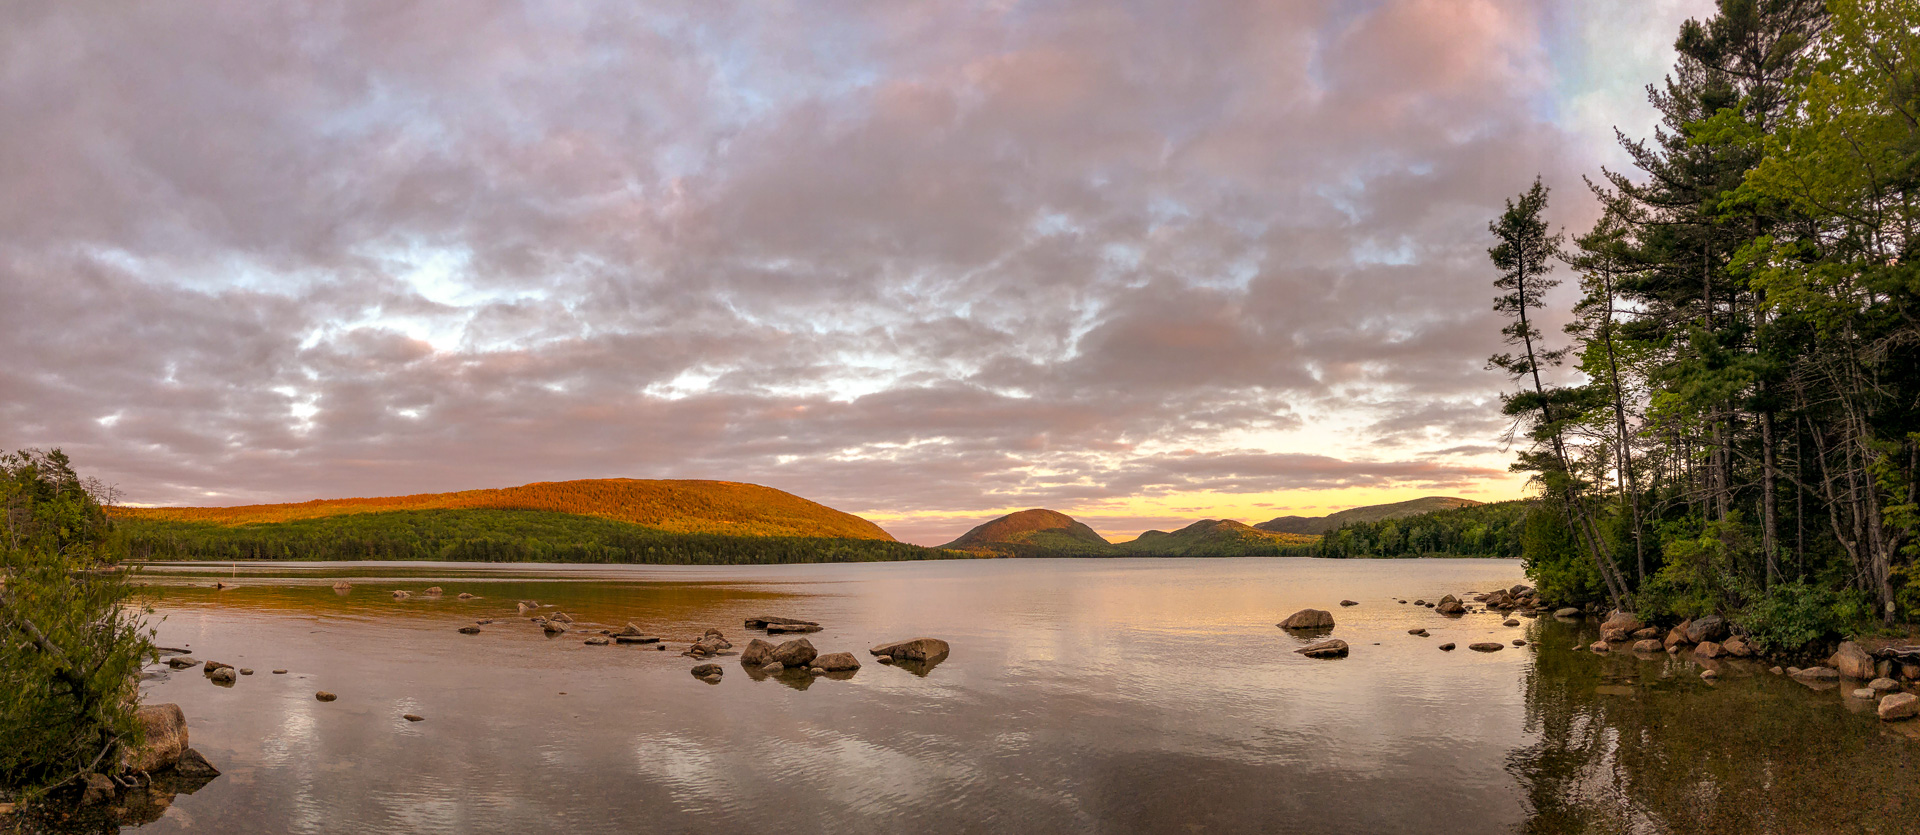 Panorama of Eagle Lake in Acadia National Park, taken with the iPhoneX